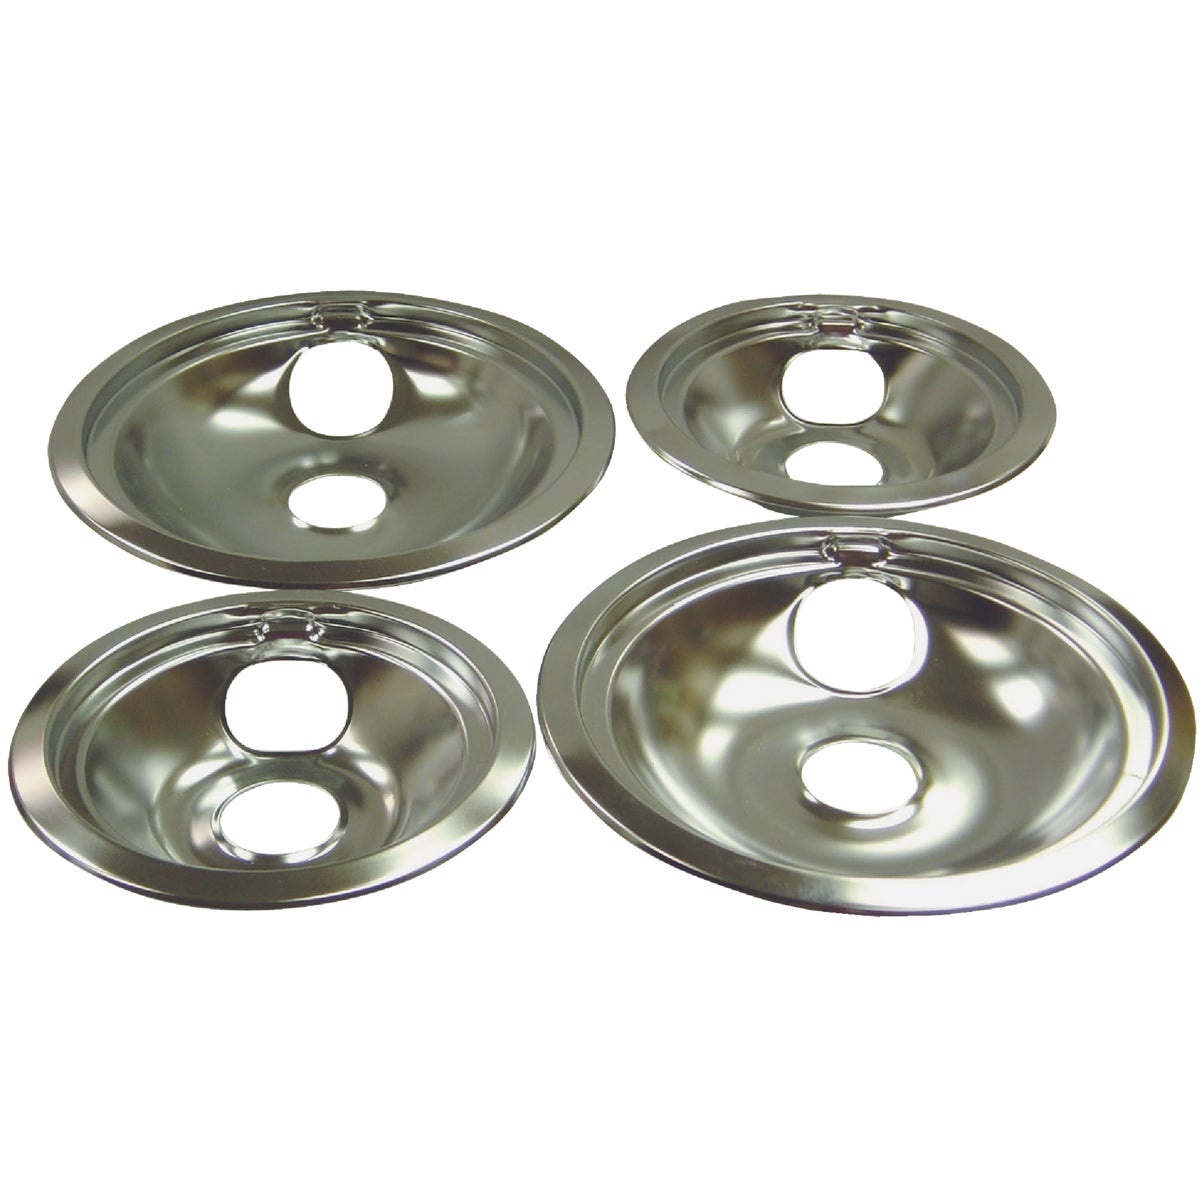 UNIVERSAL DRIP PAN - 11920-4X by Range Kleen Mfg Inc